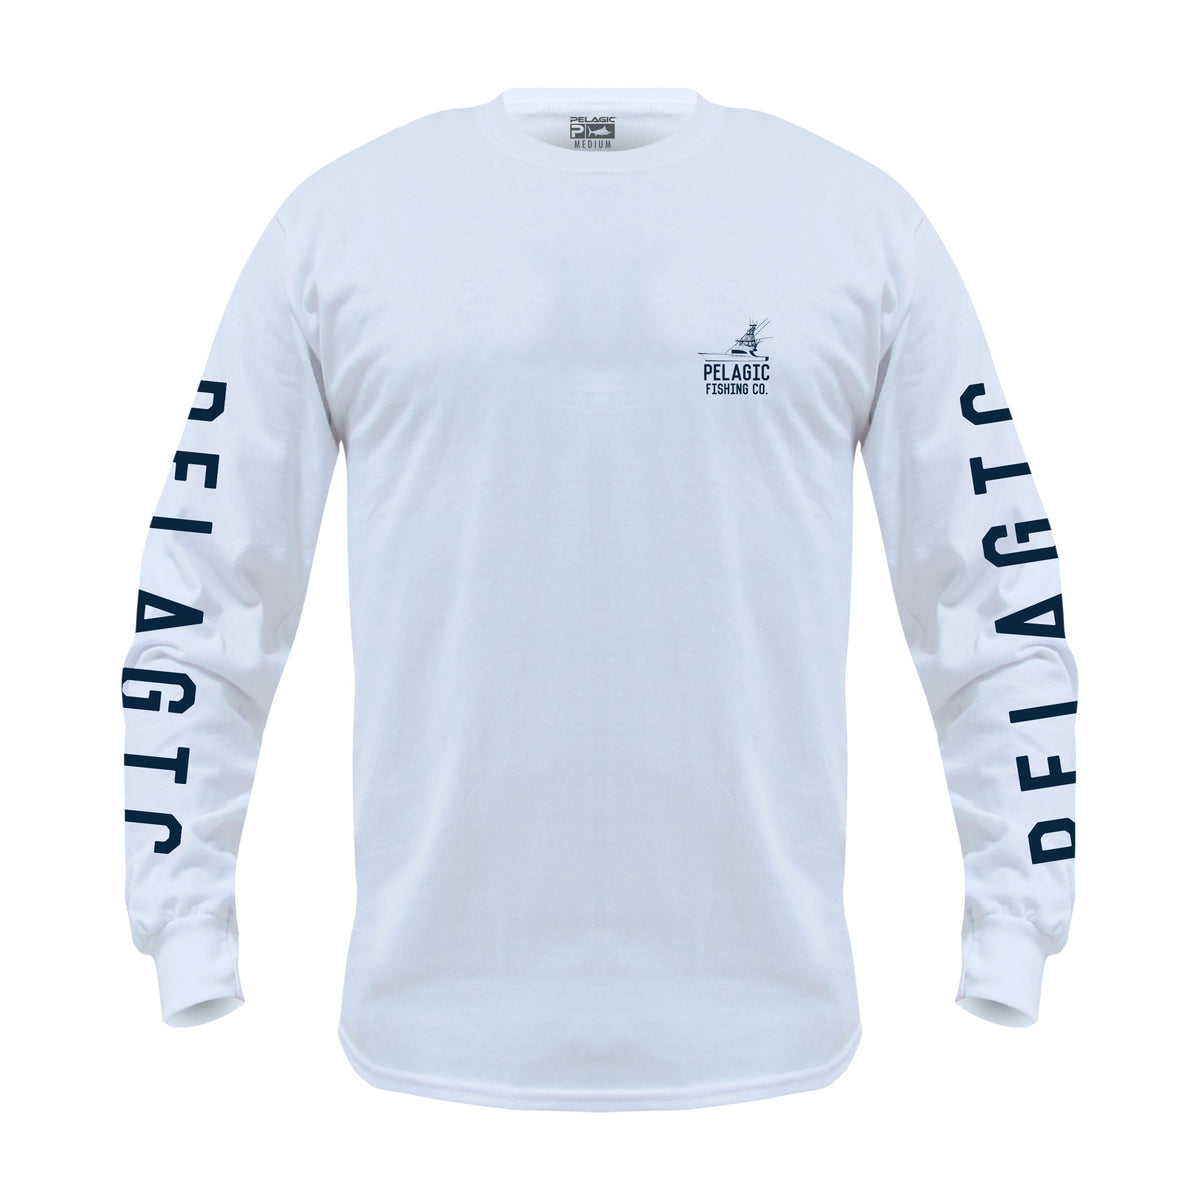 Underway Long Sleeve Fishing T-shirt Big Image - 1